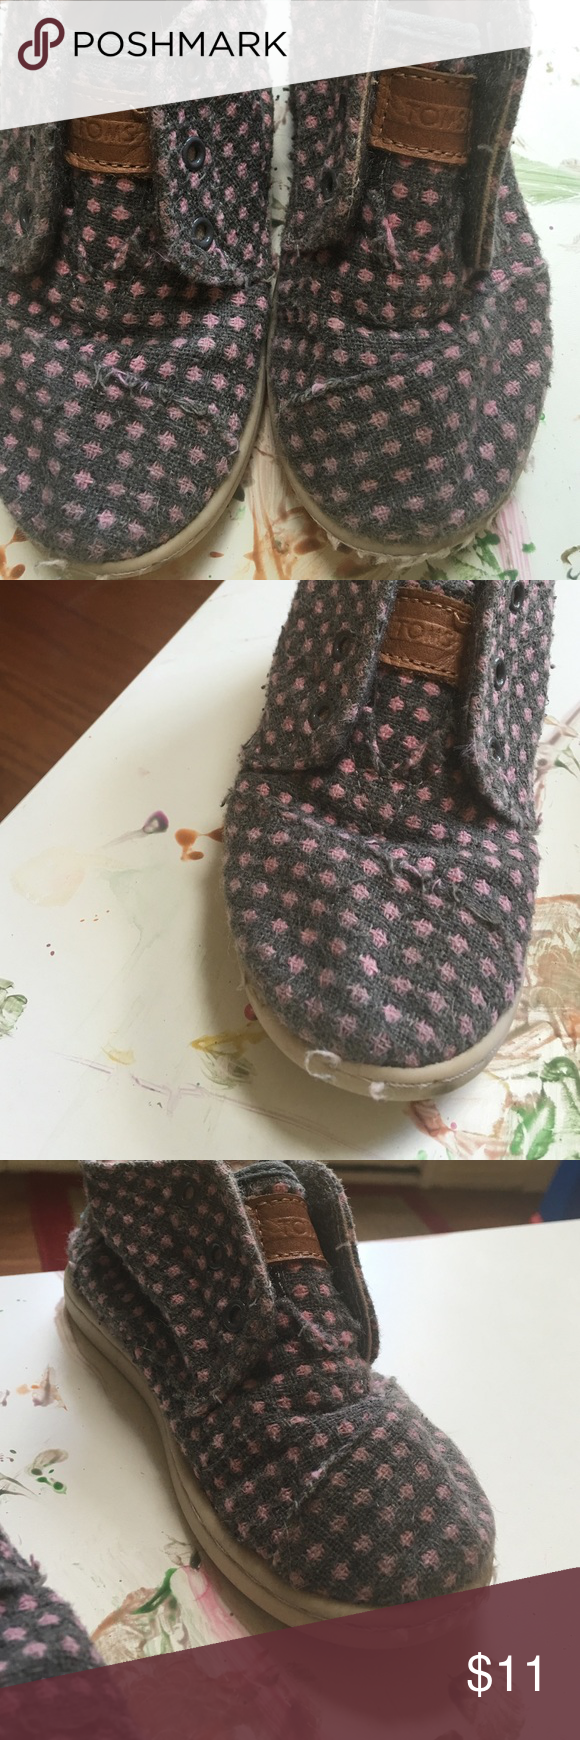 Toms size 9 toddler. Play condition My daughter actually didn't wear these much but the fabric picked immediately so I'm saying play condition..  Makes them look vintage inspired🙂 TOMS Shoes